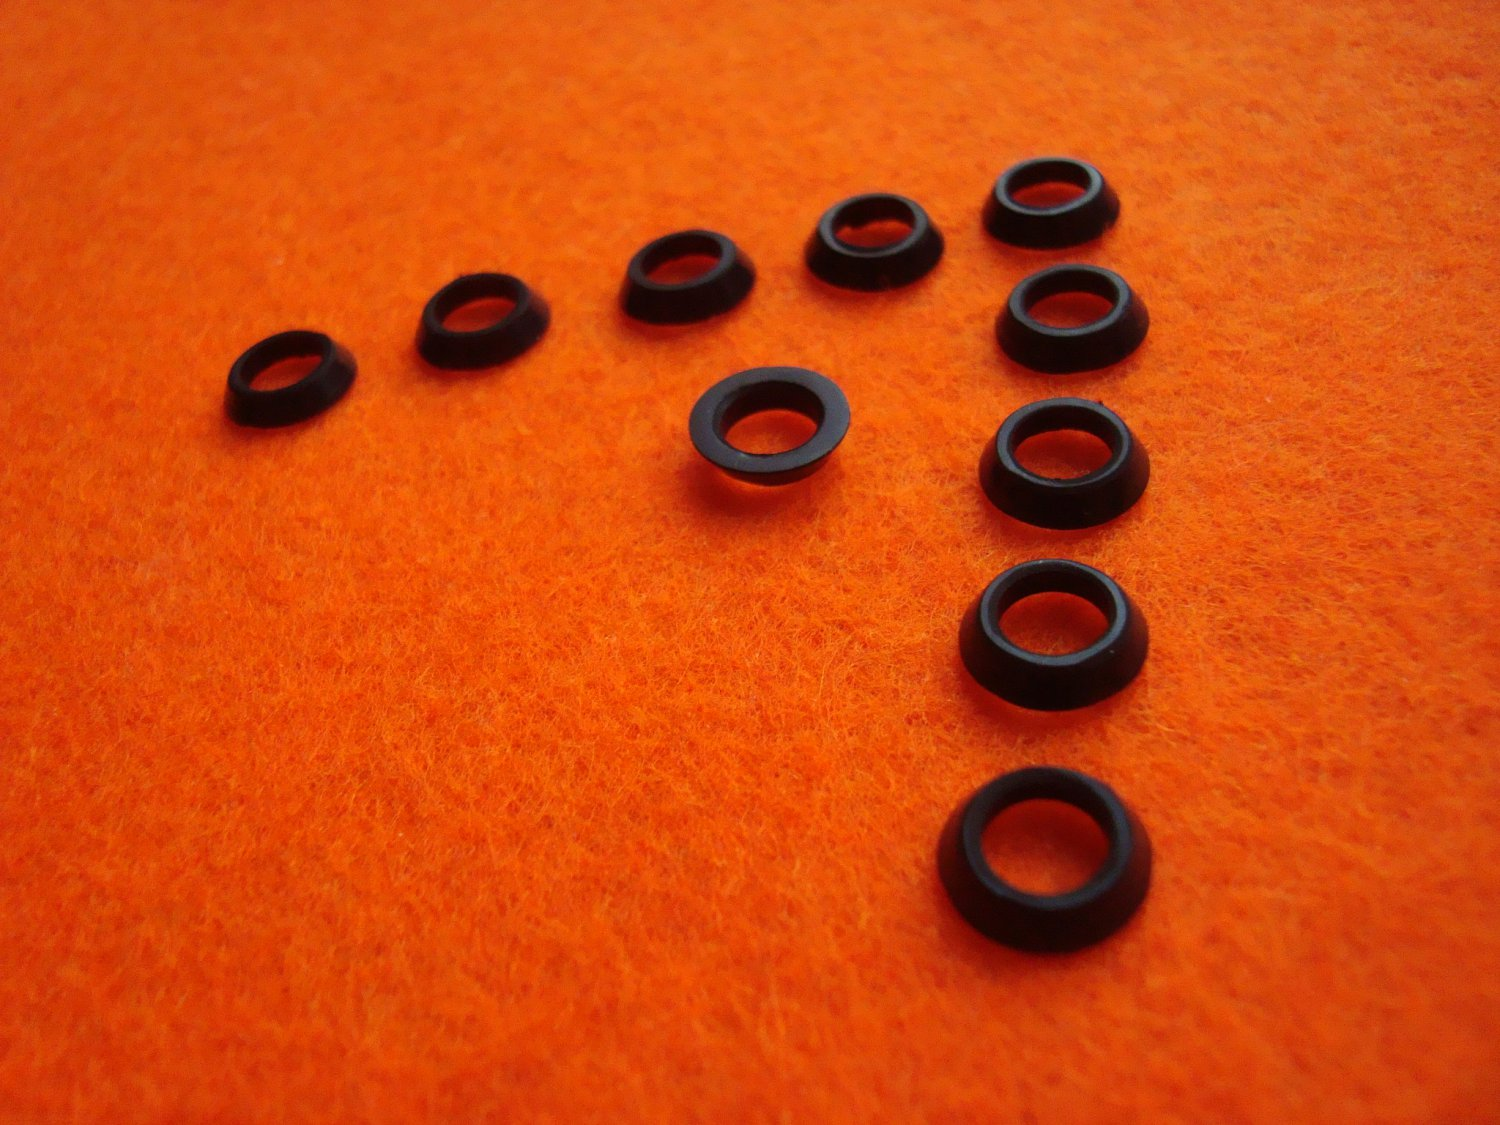 Sealing elements MP-654K, MP-661K drozd, blackbird in upgrade repair kit, tuned parts made to order.